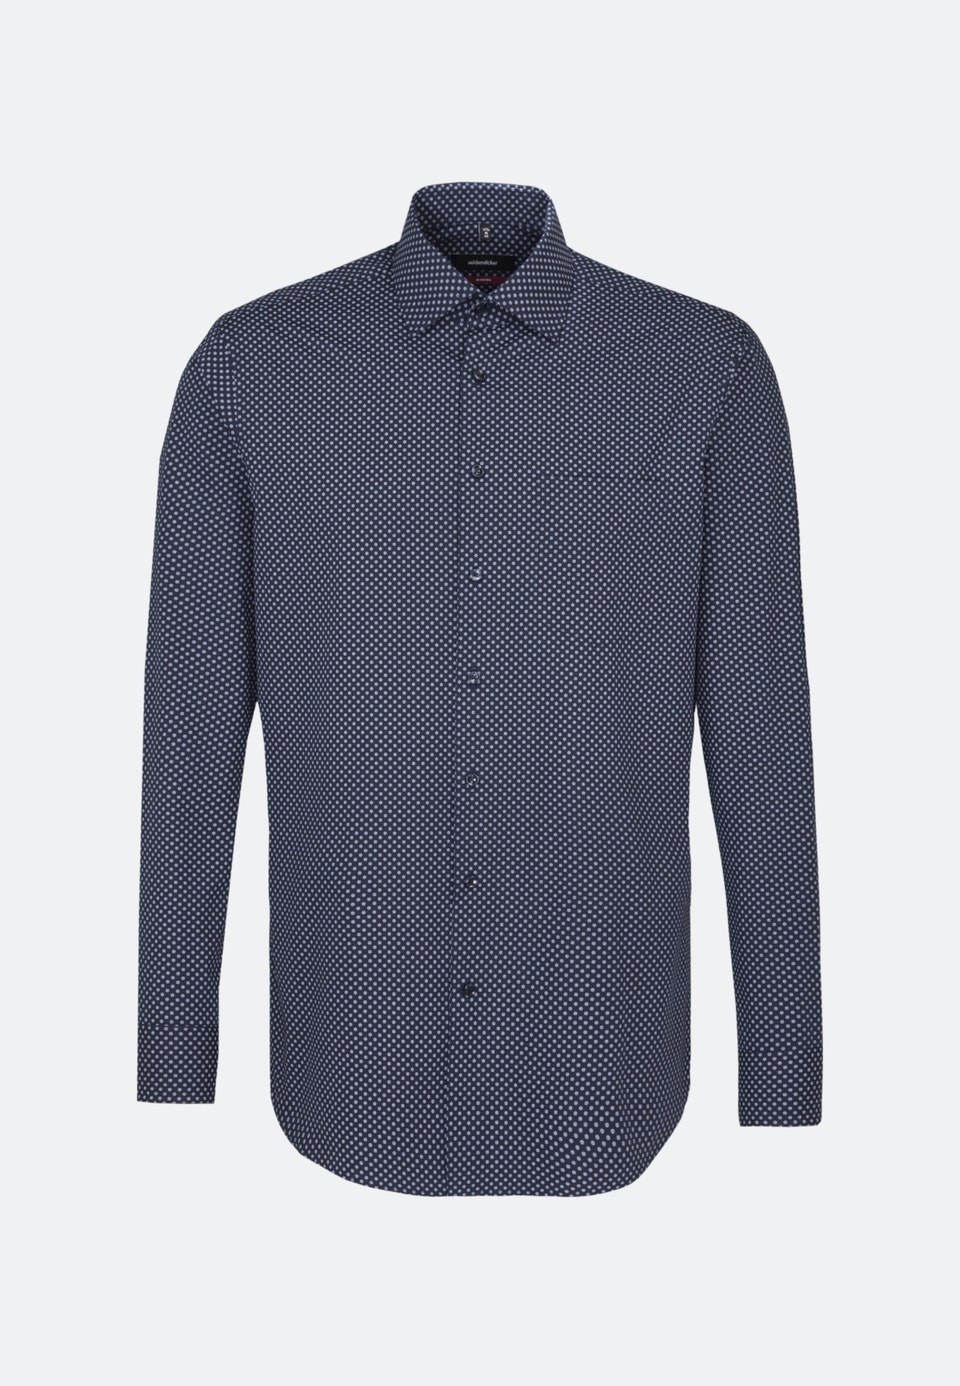 Bügelleichtes Popeline Business Hemd in Regular mit Kentkragen in Dunkelblau |  Seidensticker Onlineshop